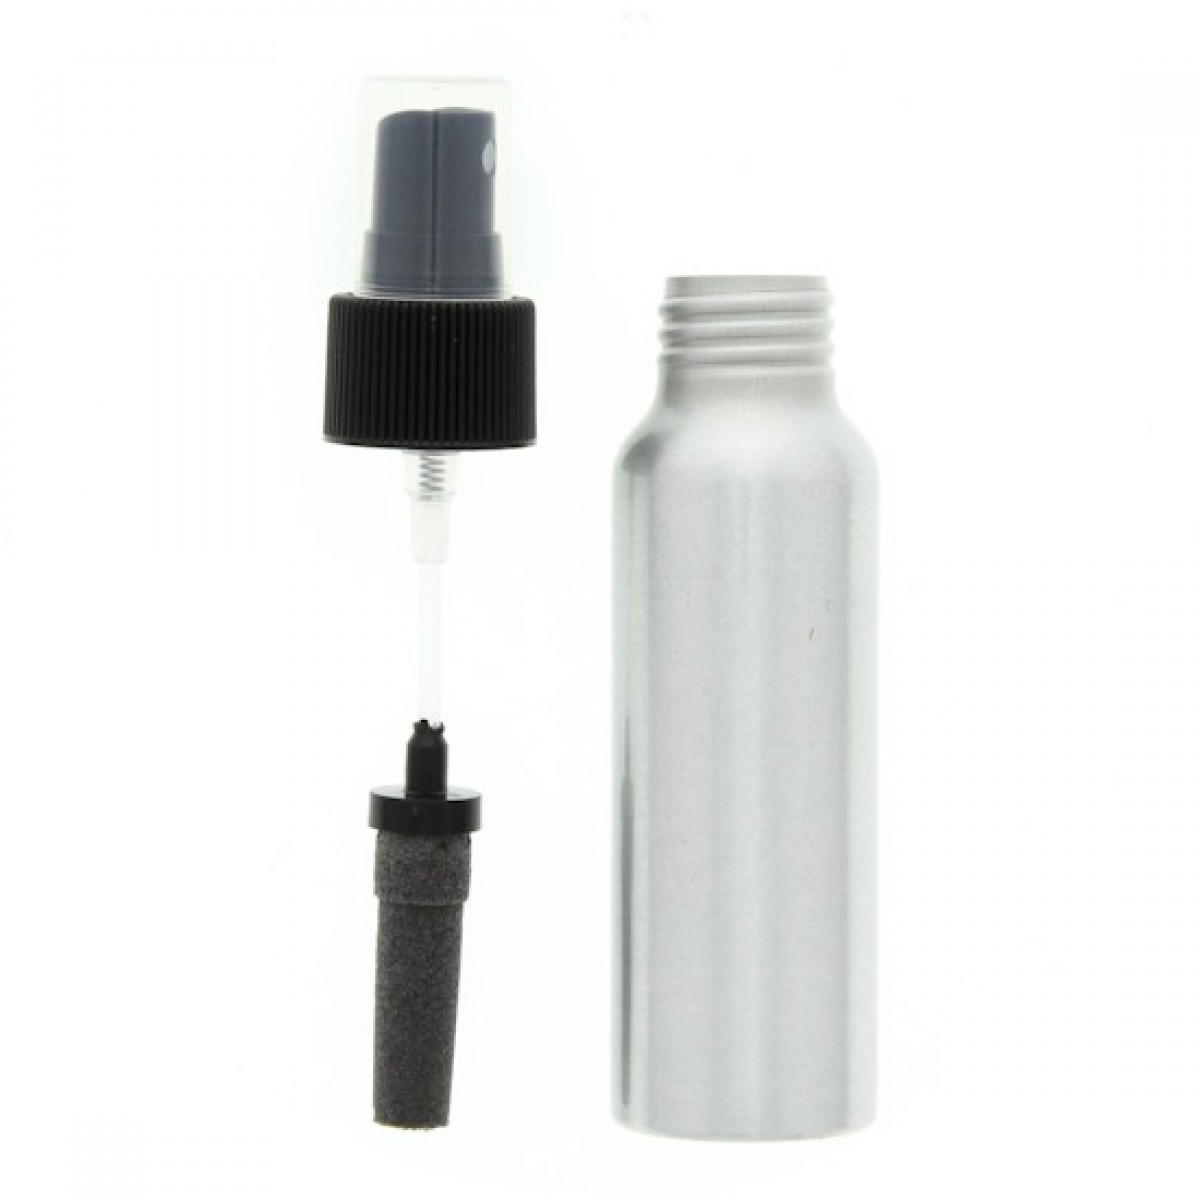 Water Mister System : Seychelle am aqua mist personal water misting system